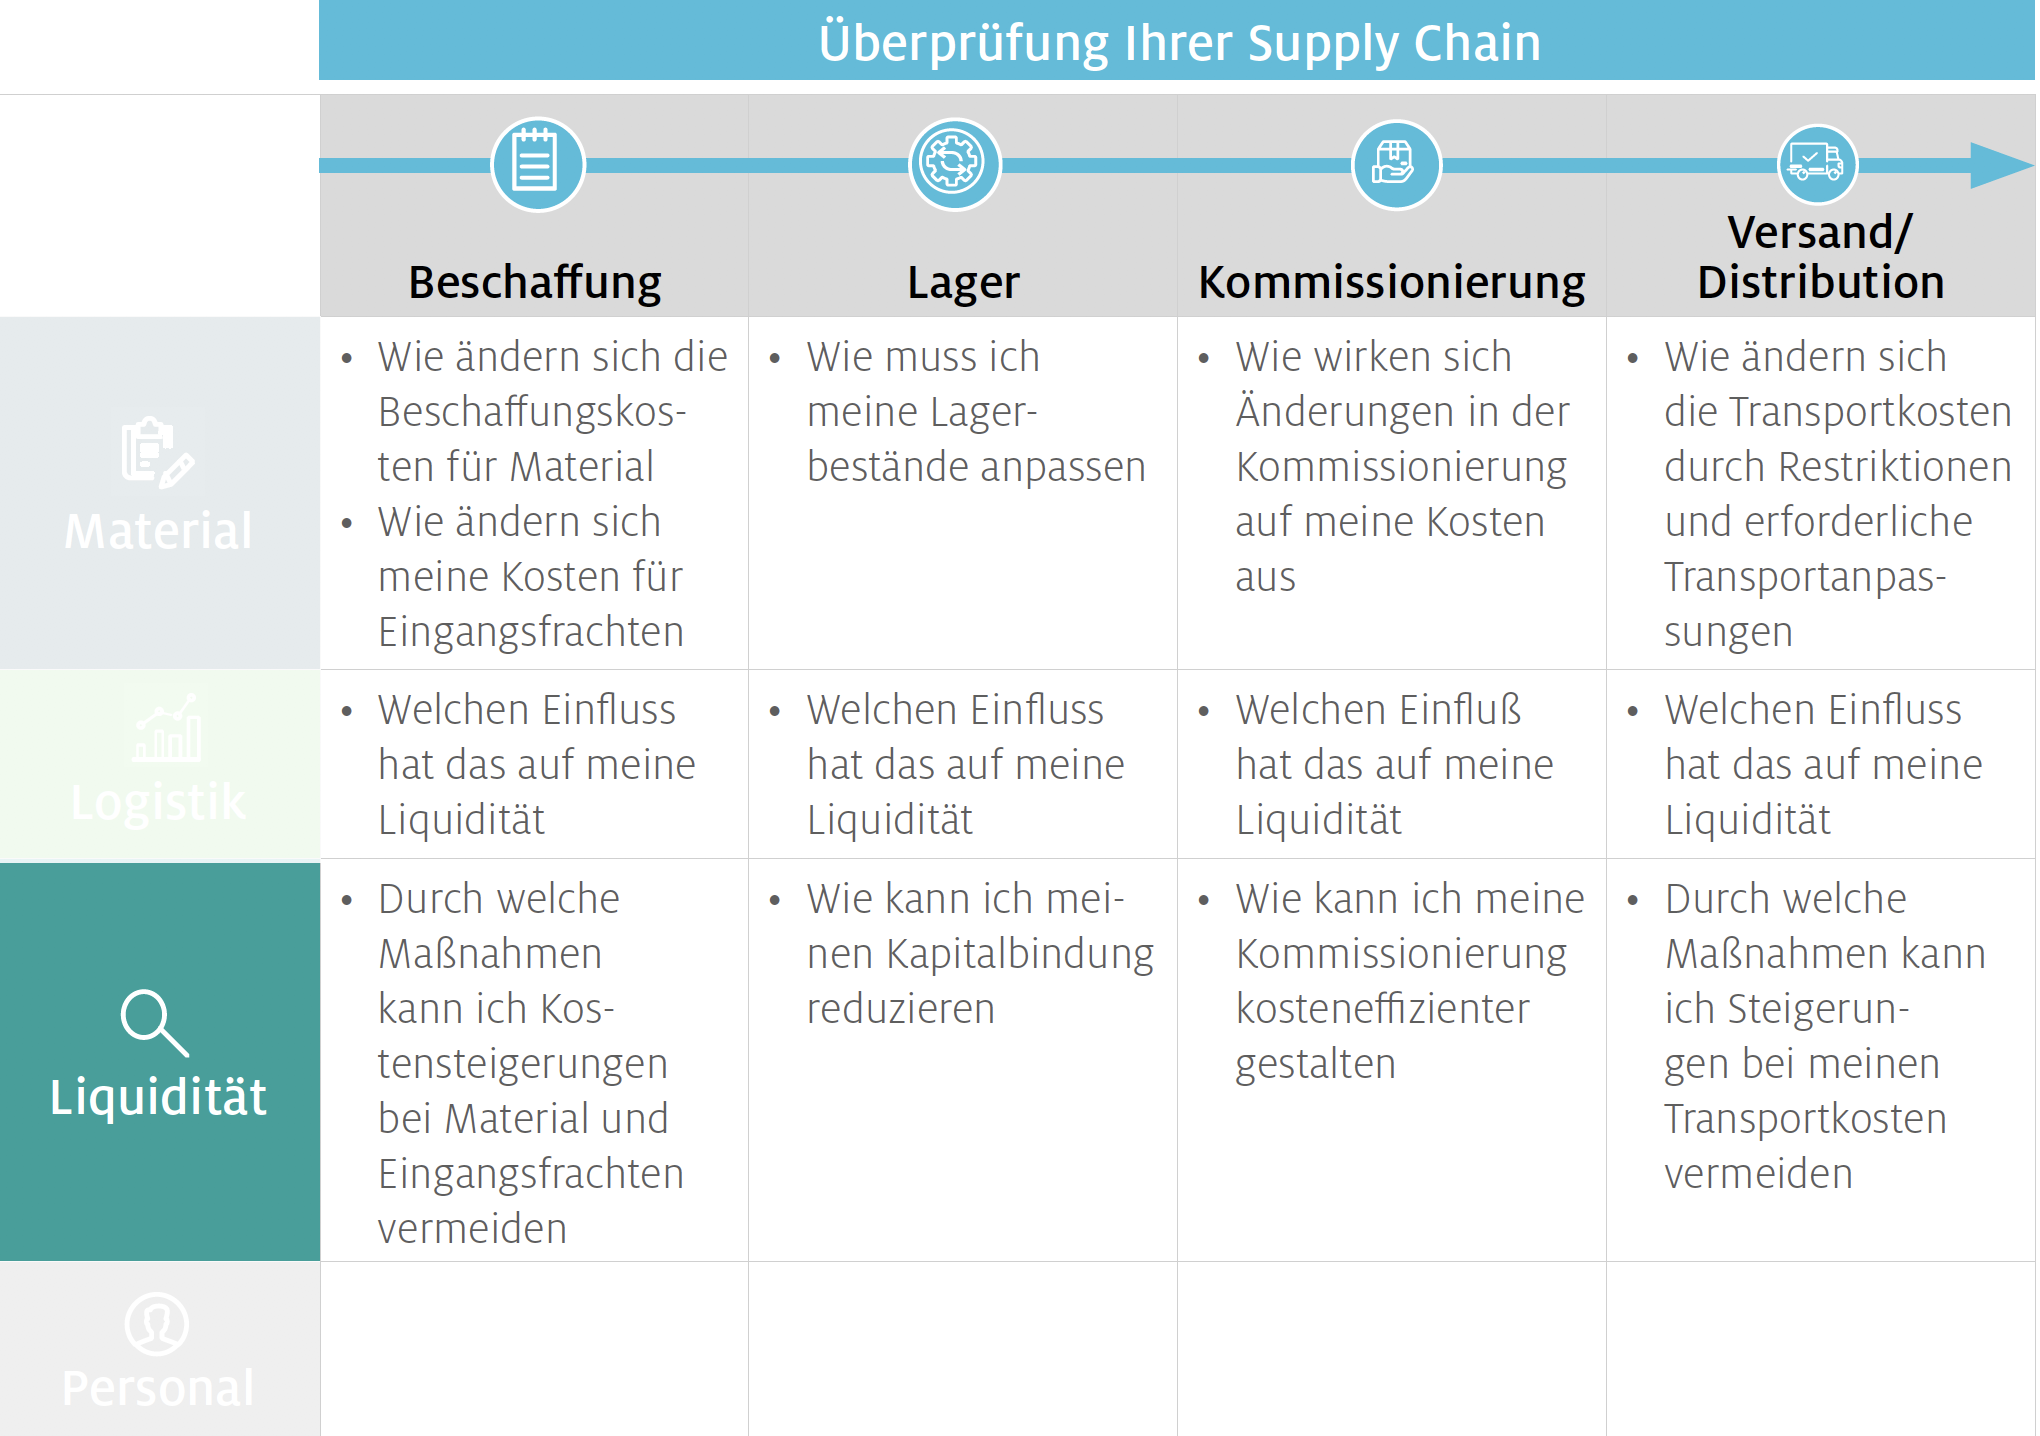 Liquidität in der Supply Chain sicherstellen